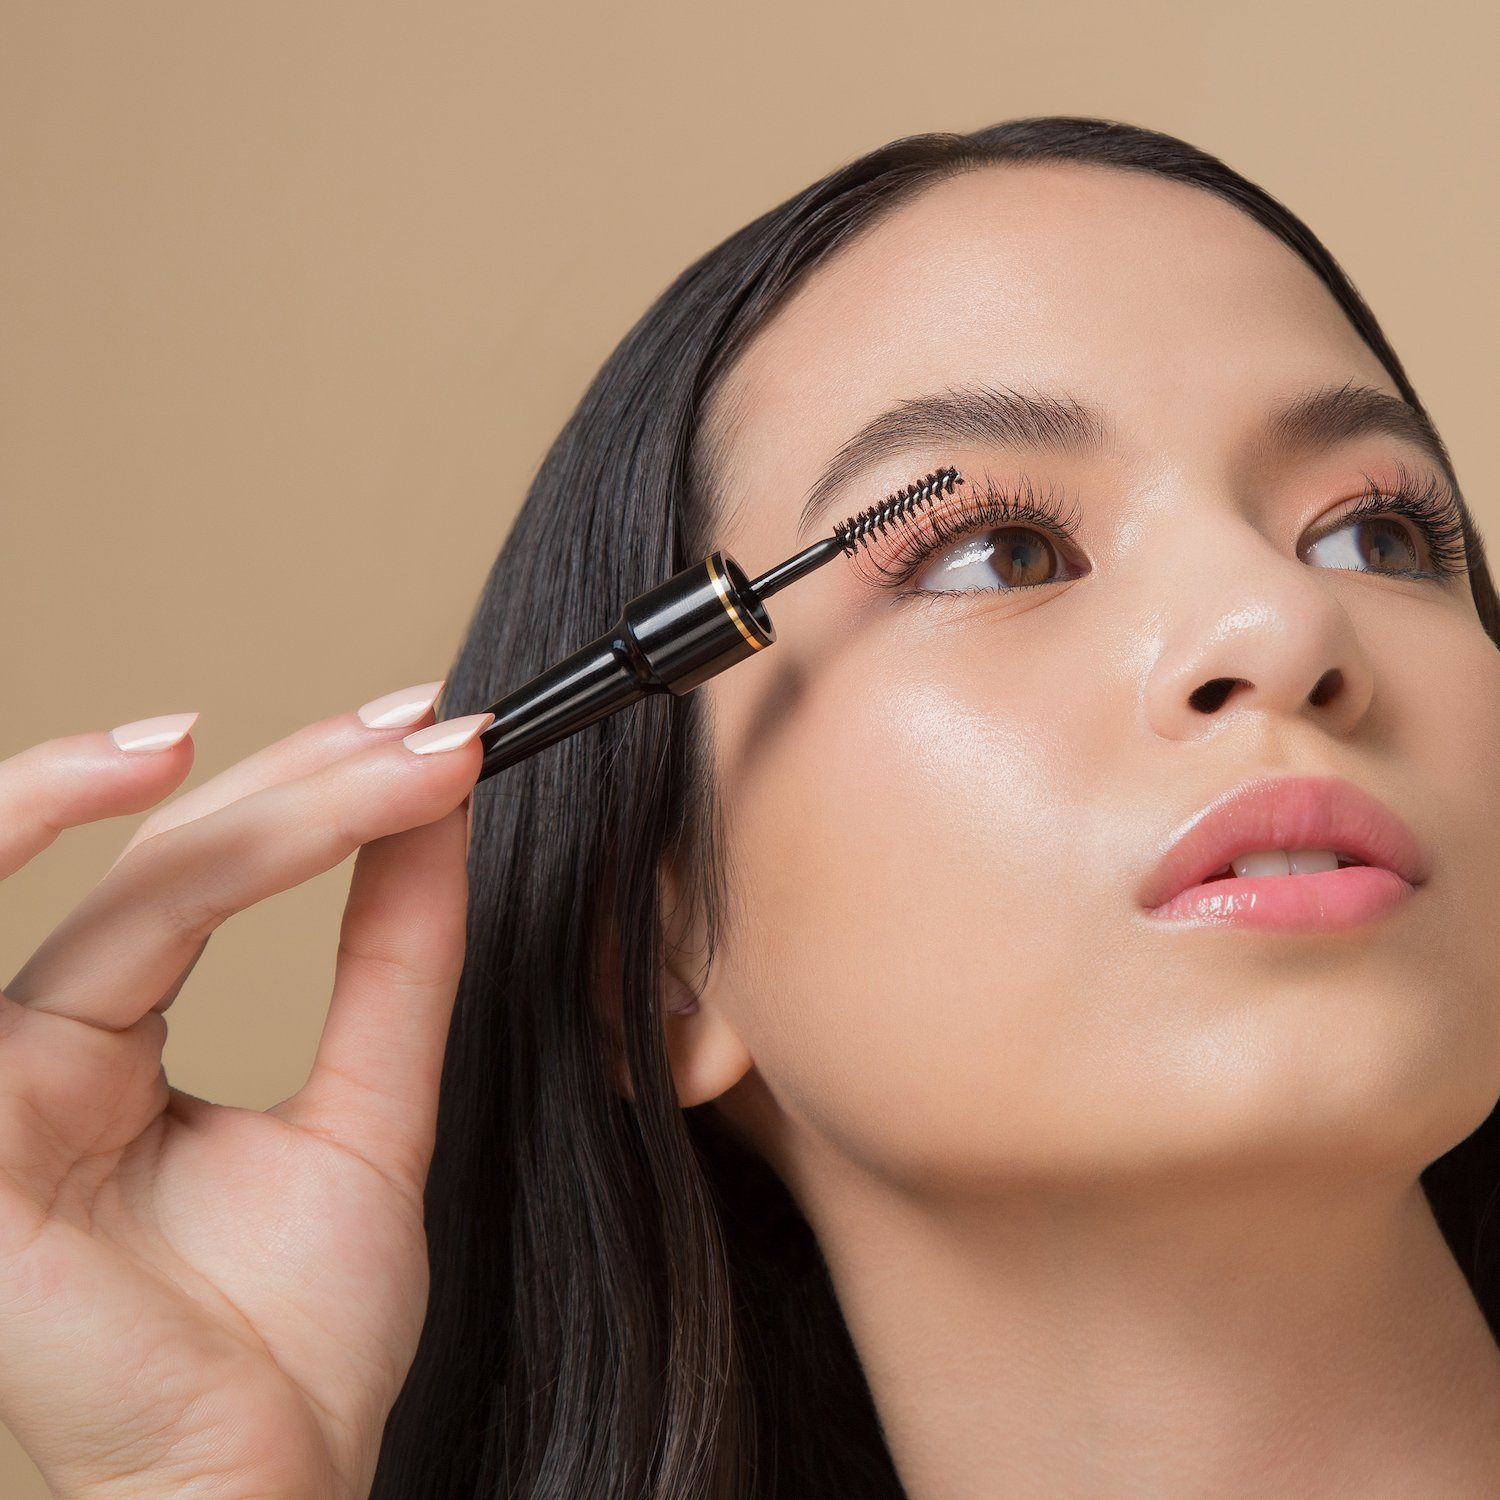 What Does Eyelash Extension Sealer Do And Do I Need It?